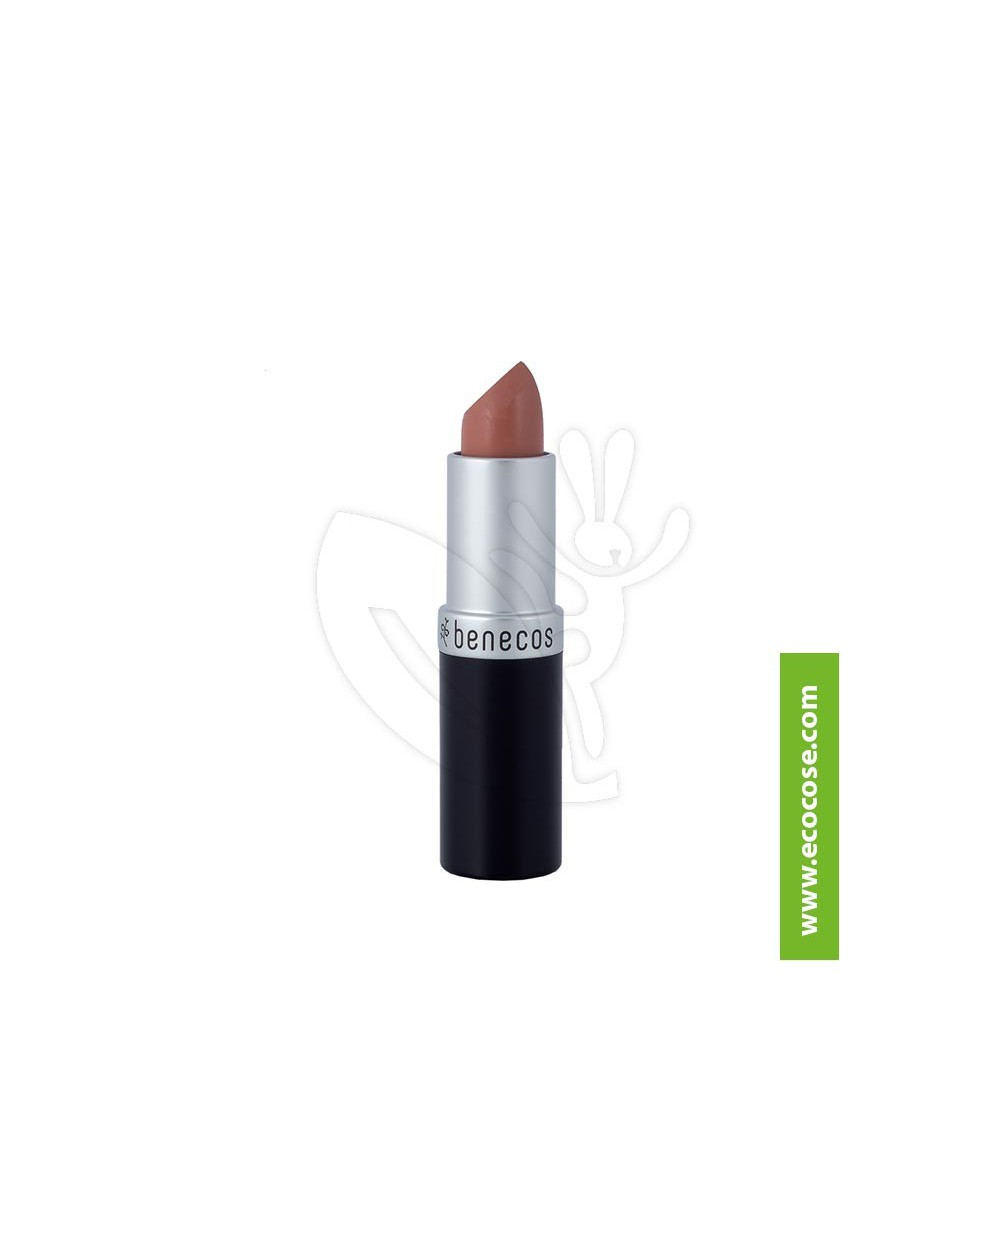 Benecos - Rossetto naturale - Muse